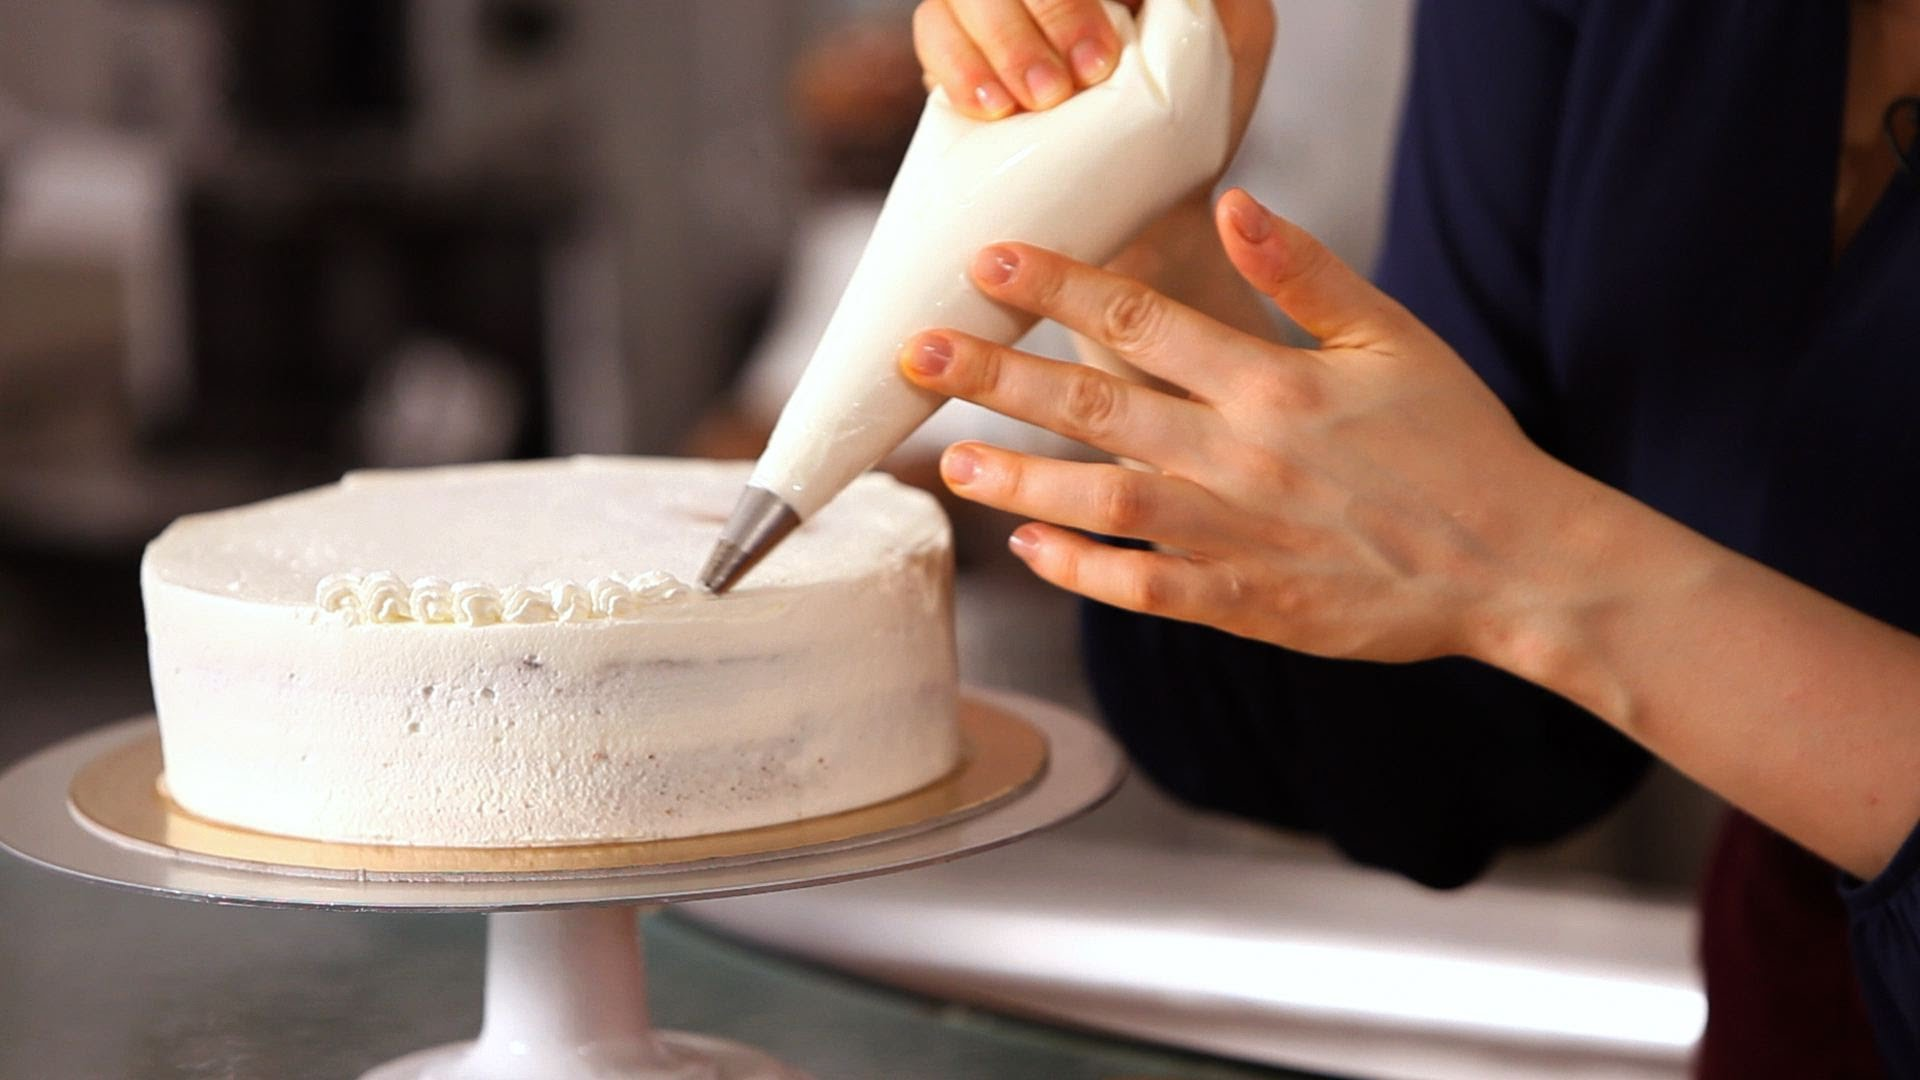 Cake Decorating with Fresh Cream Baking Class